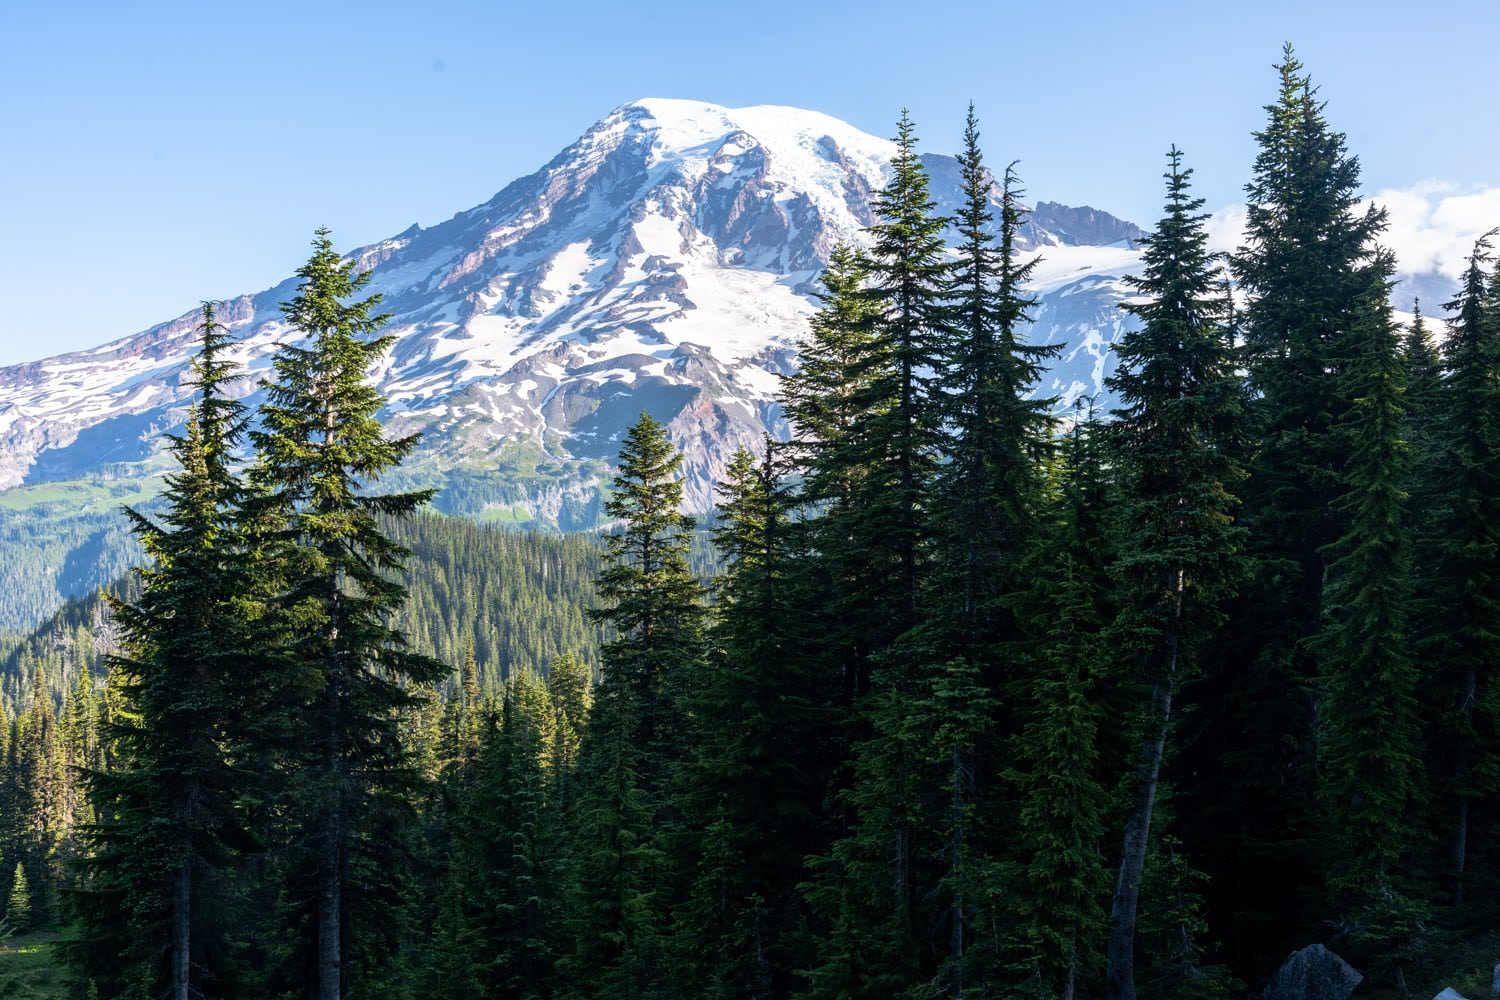 Mount Rainier Elopement Packages